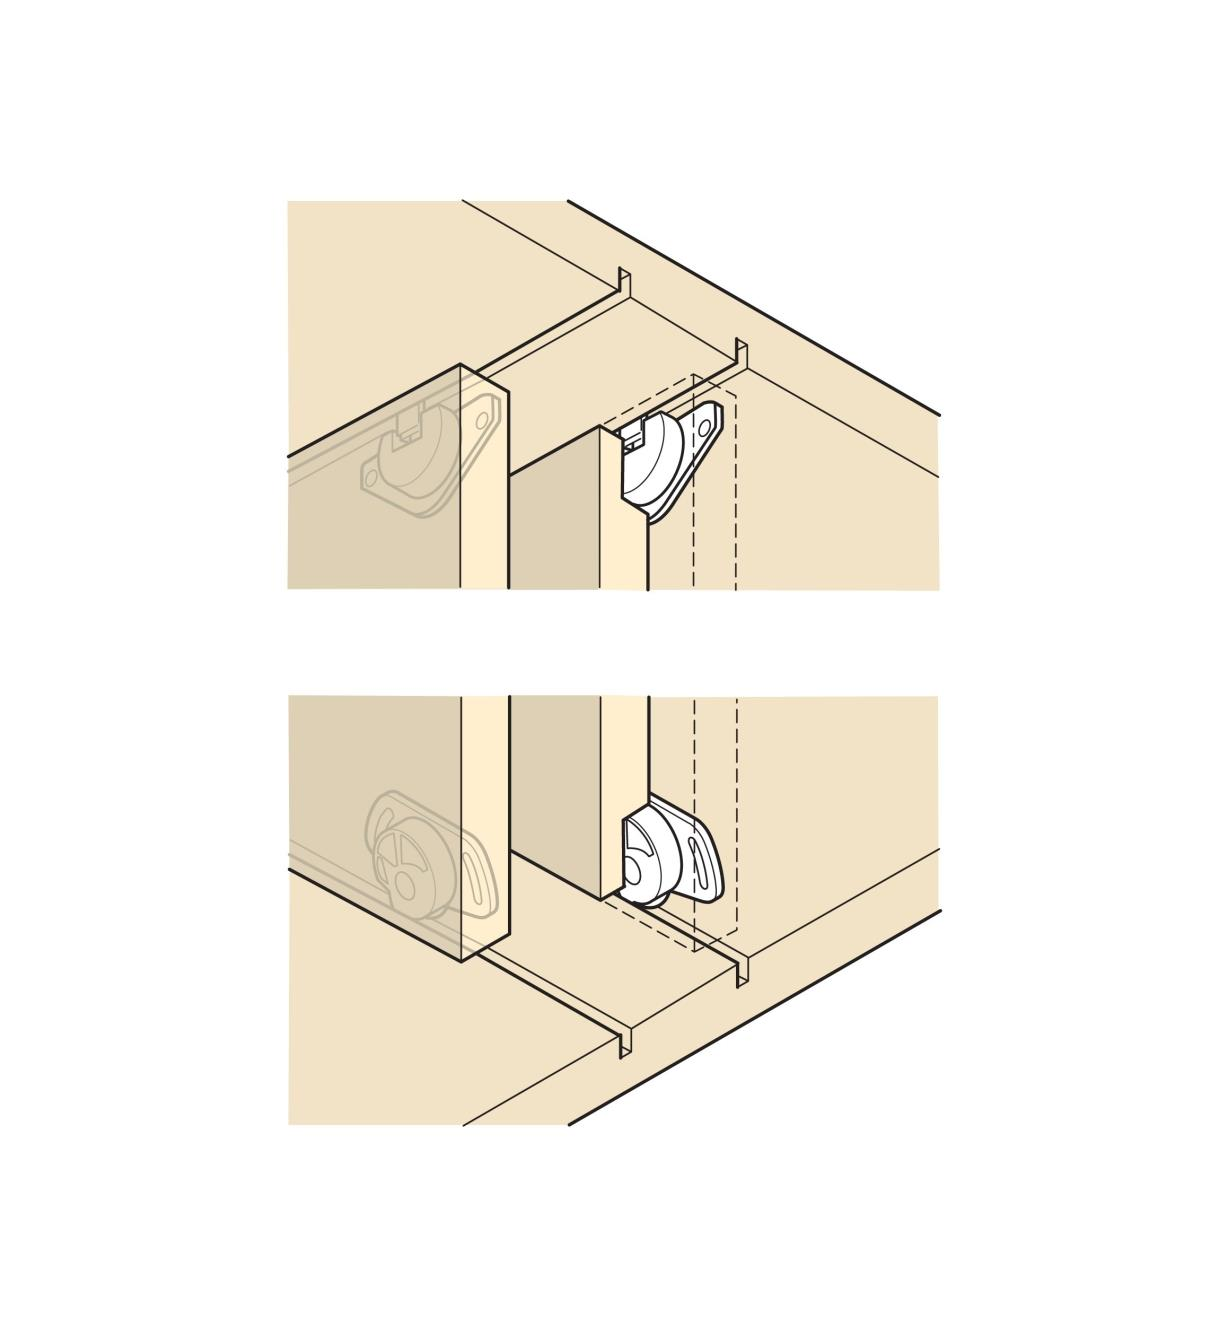 Illustration of plastic guides installed in the top and bottom of a door